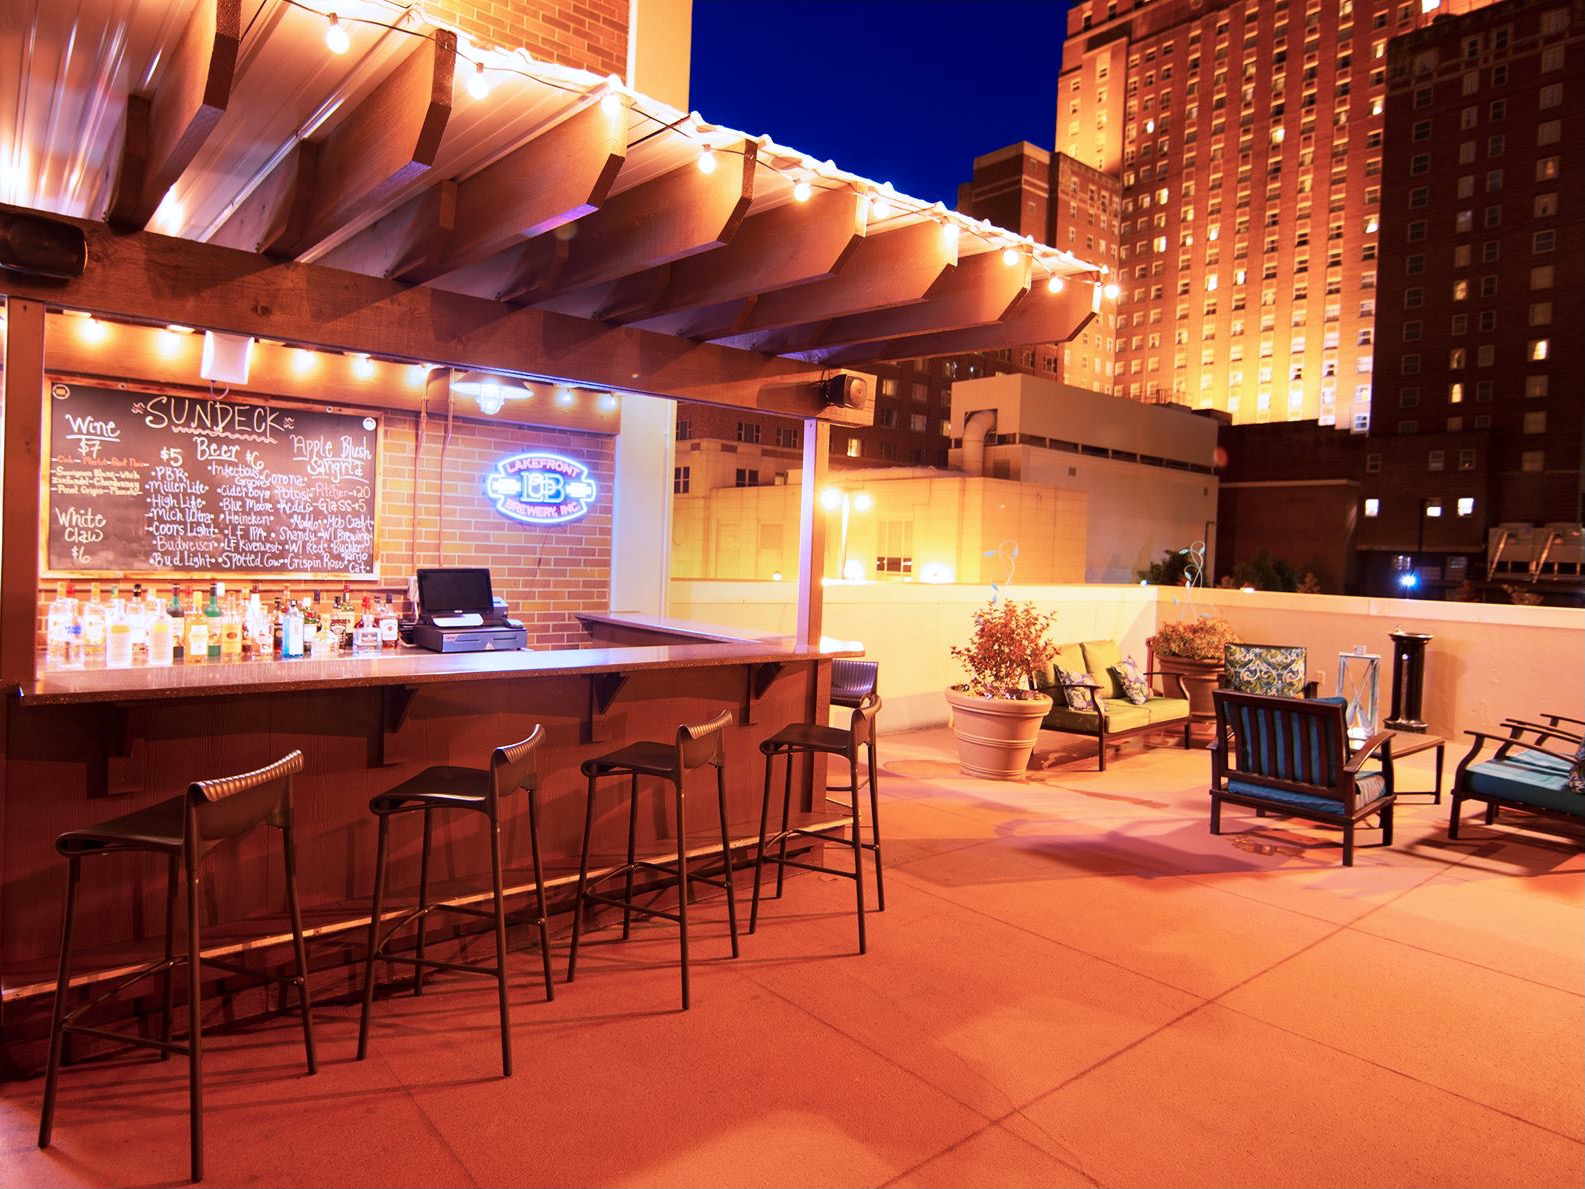 The Sundeck rooftop patio at DoubleTree Hotel